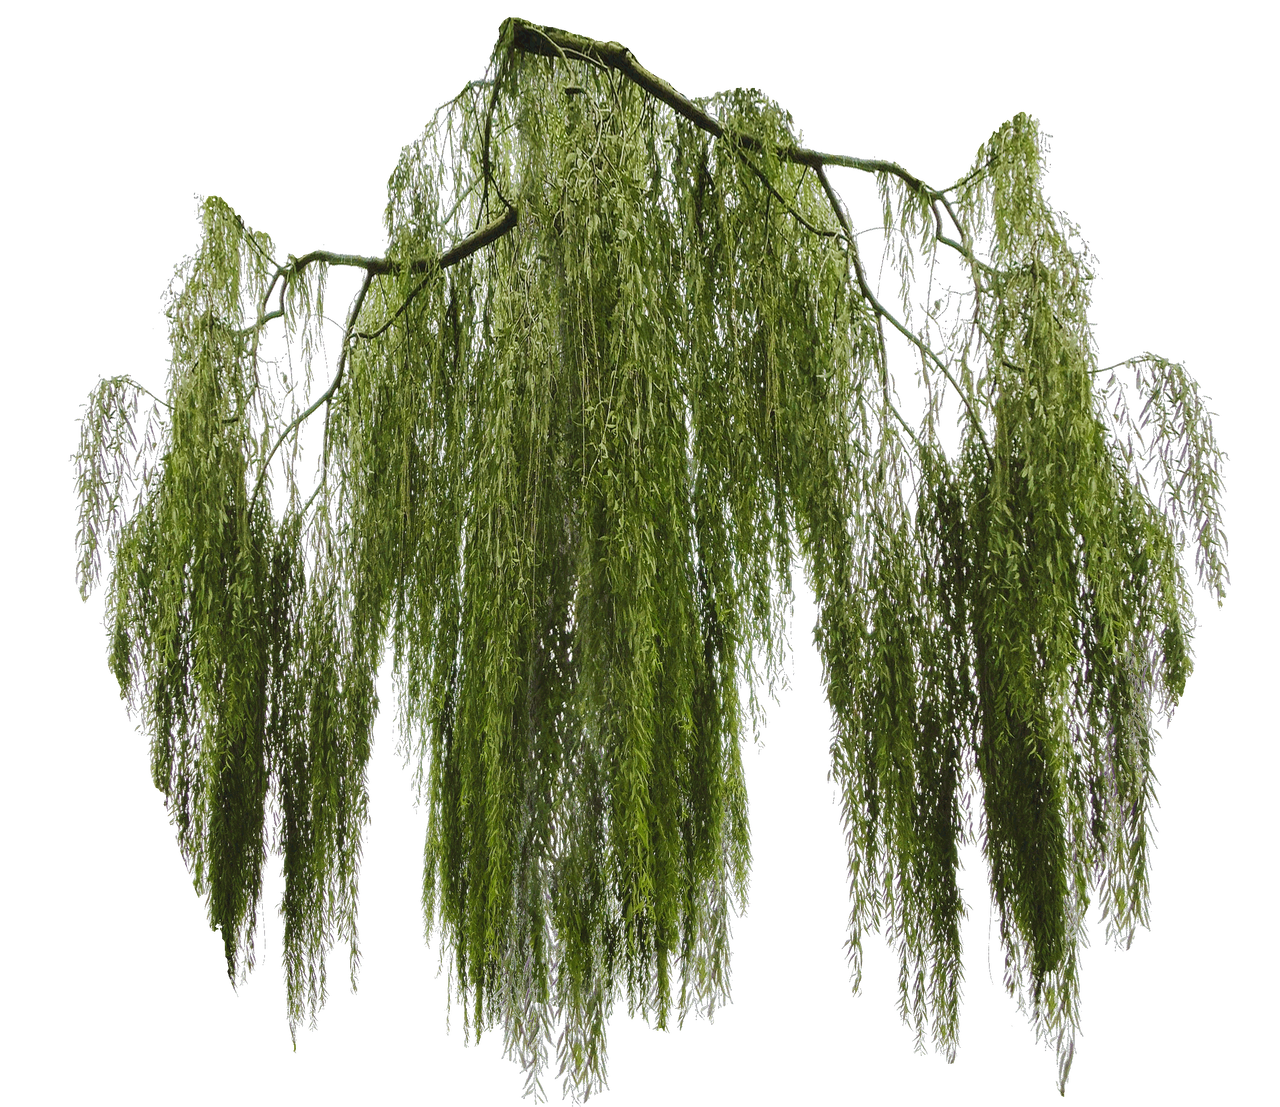 Weeping willow branch cut-out